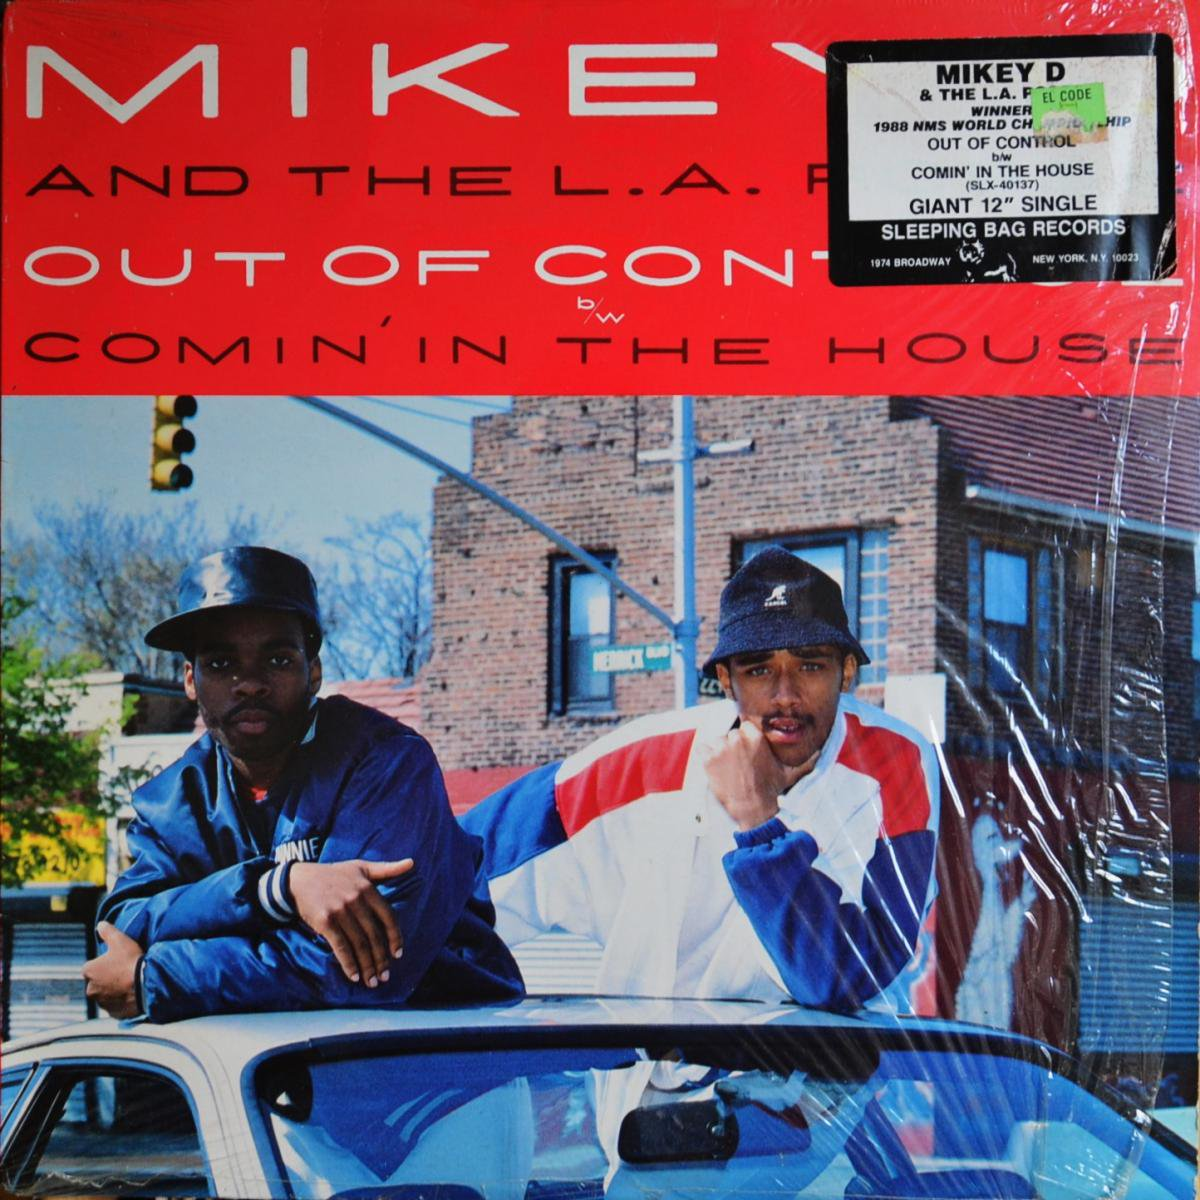 MIKEY D & THE L.A.POSSE / OUT OF CONTROL / COMIN' IN THE HOUSE (12